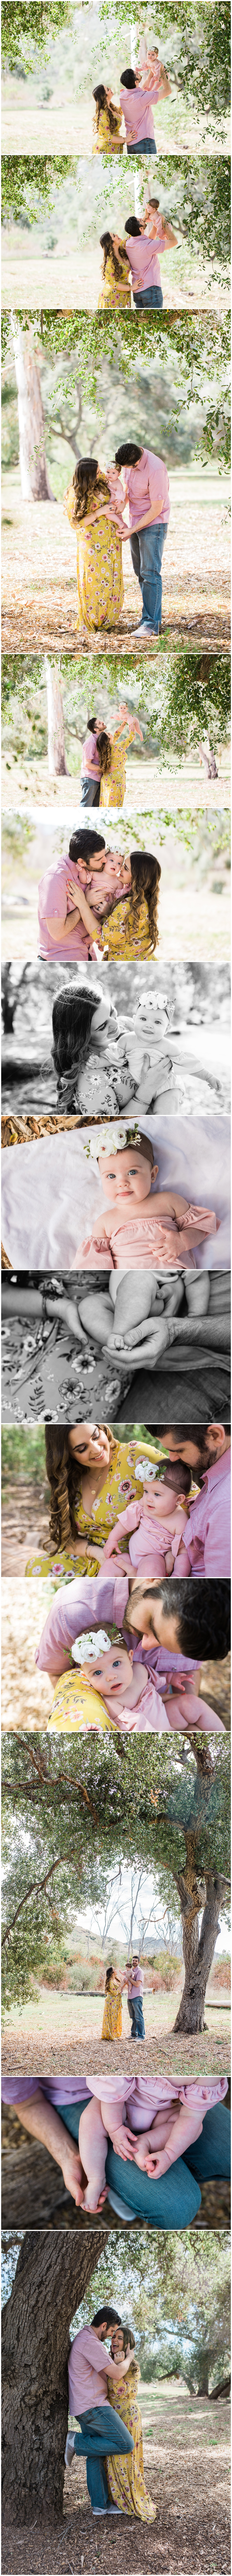 Chrissy Walther, San Diego Family Photographer